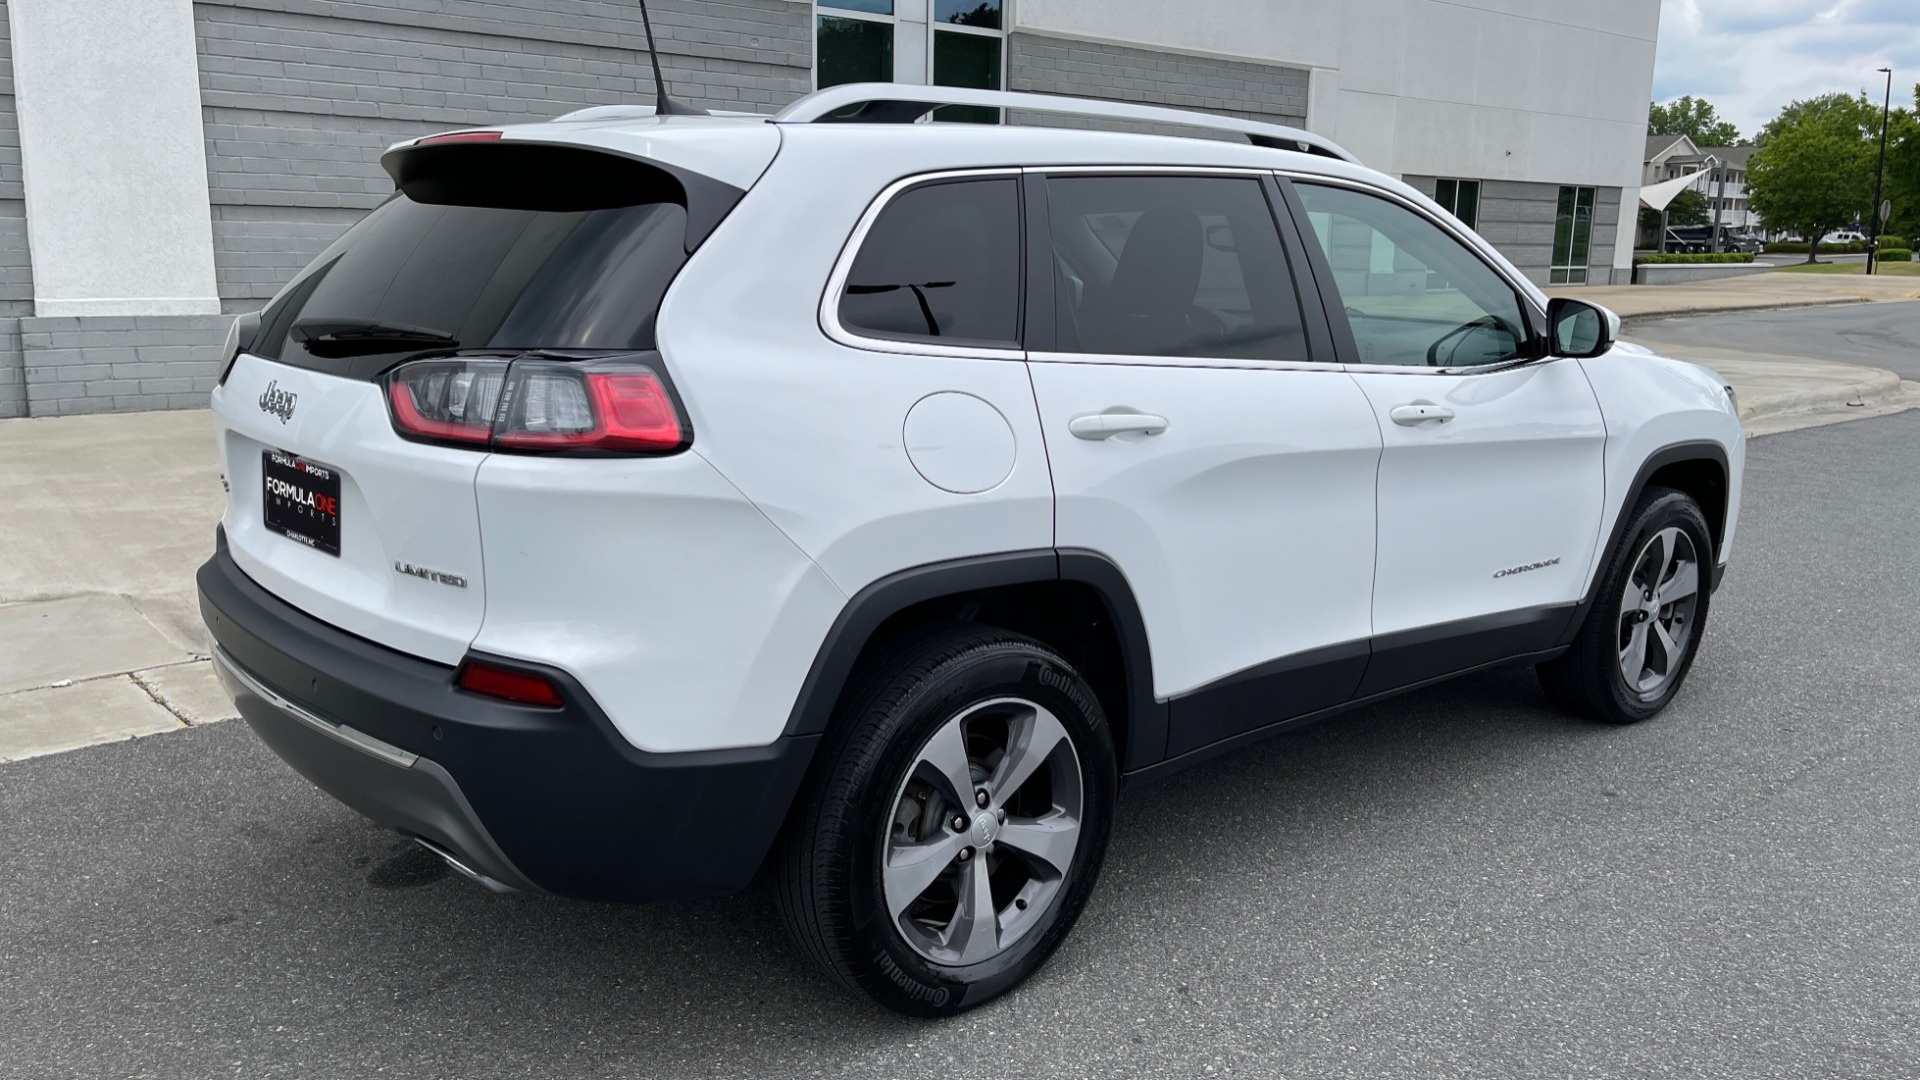 Used 2019 Jeep CHEROKEE LIMITED 4X4 / KEYLESS-GO / BLIND SPOT AND CROSS PATH / REMOTE START / REARV for sale $26,995 at Formula Imports in Charlotte NC 28227 2